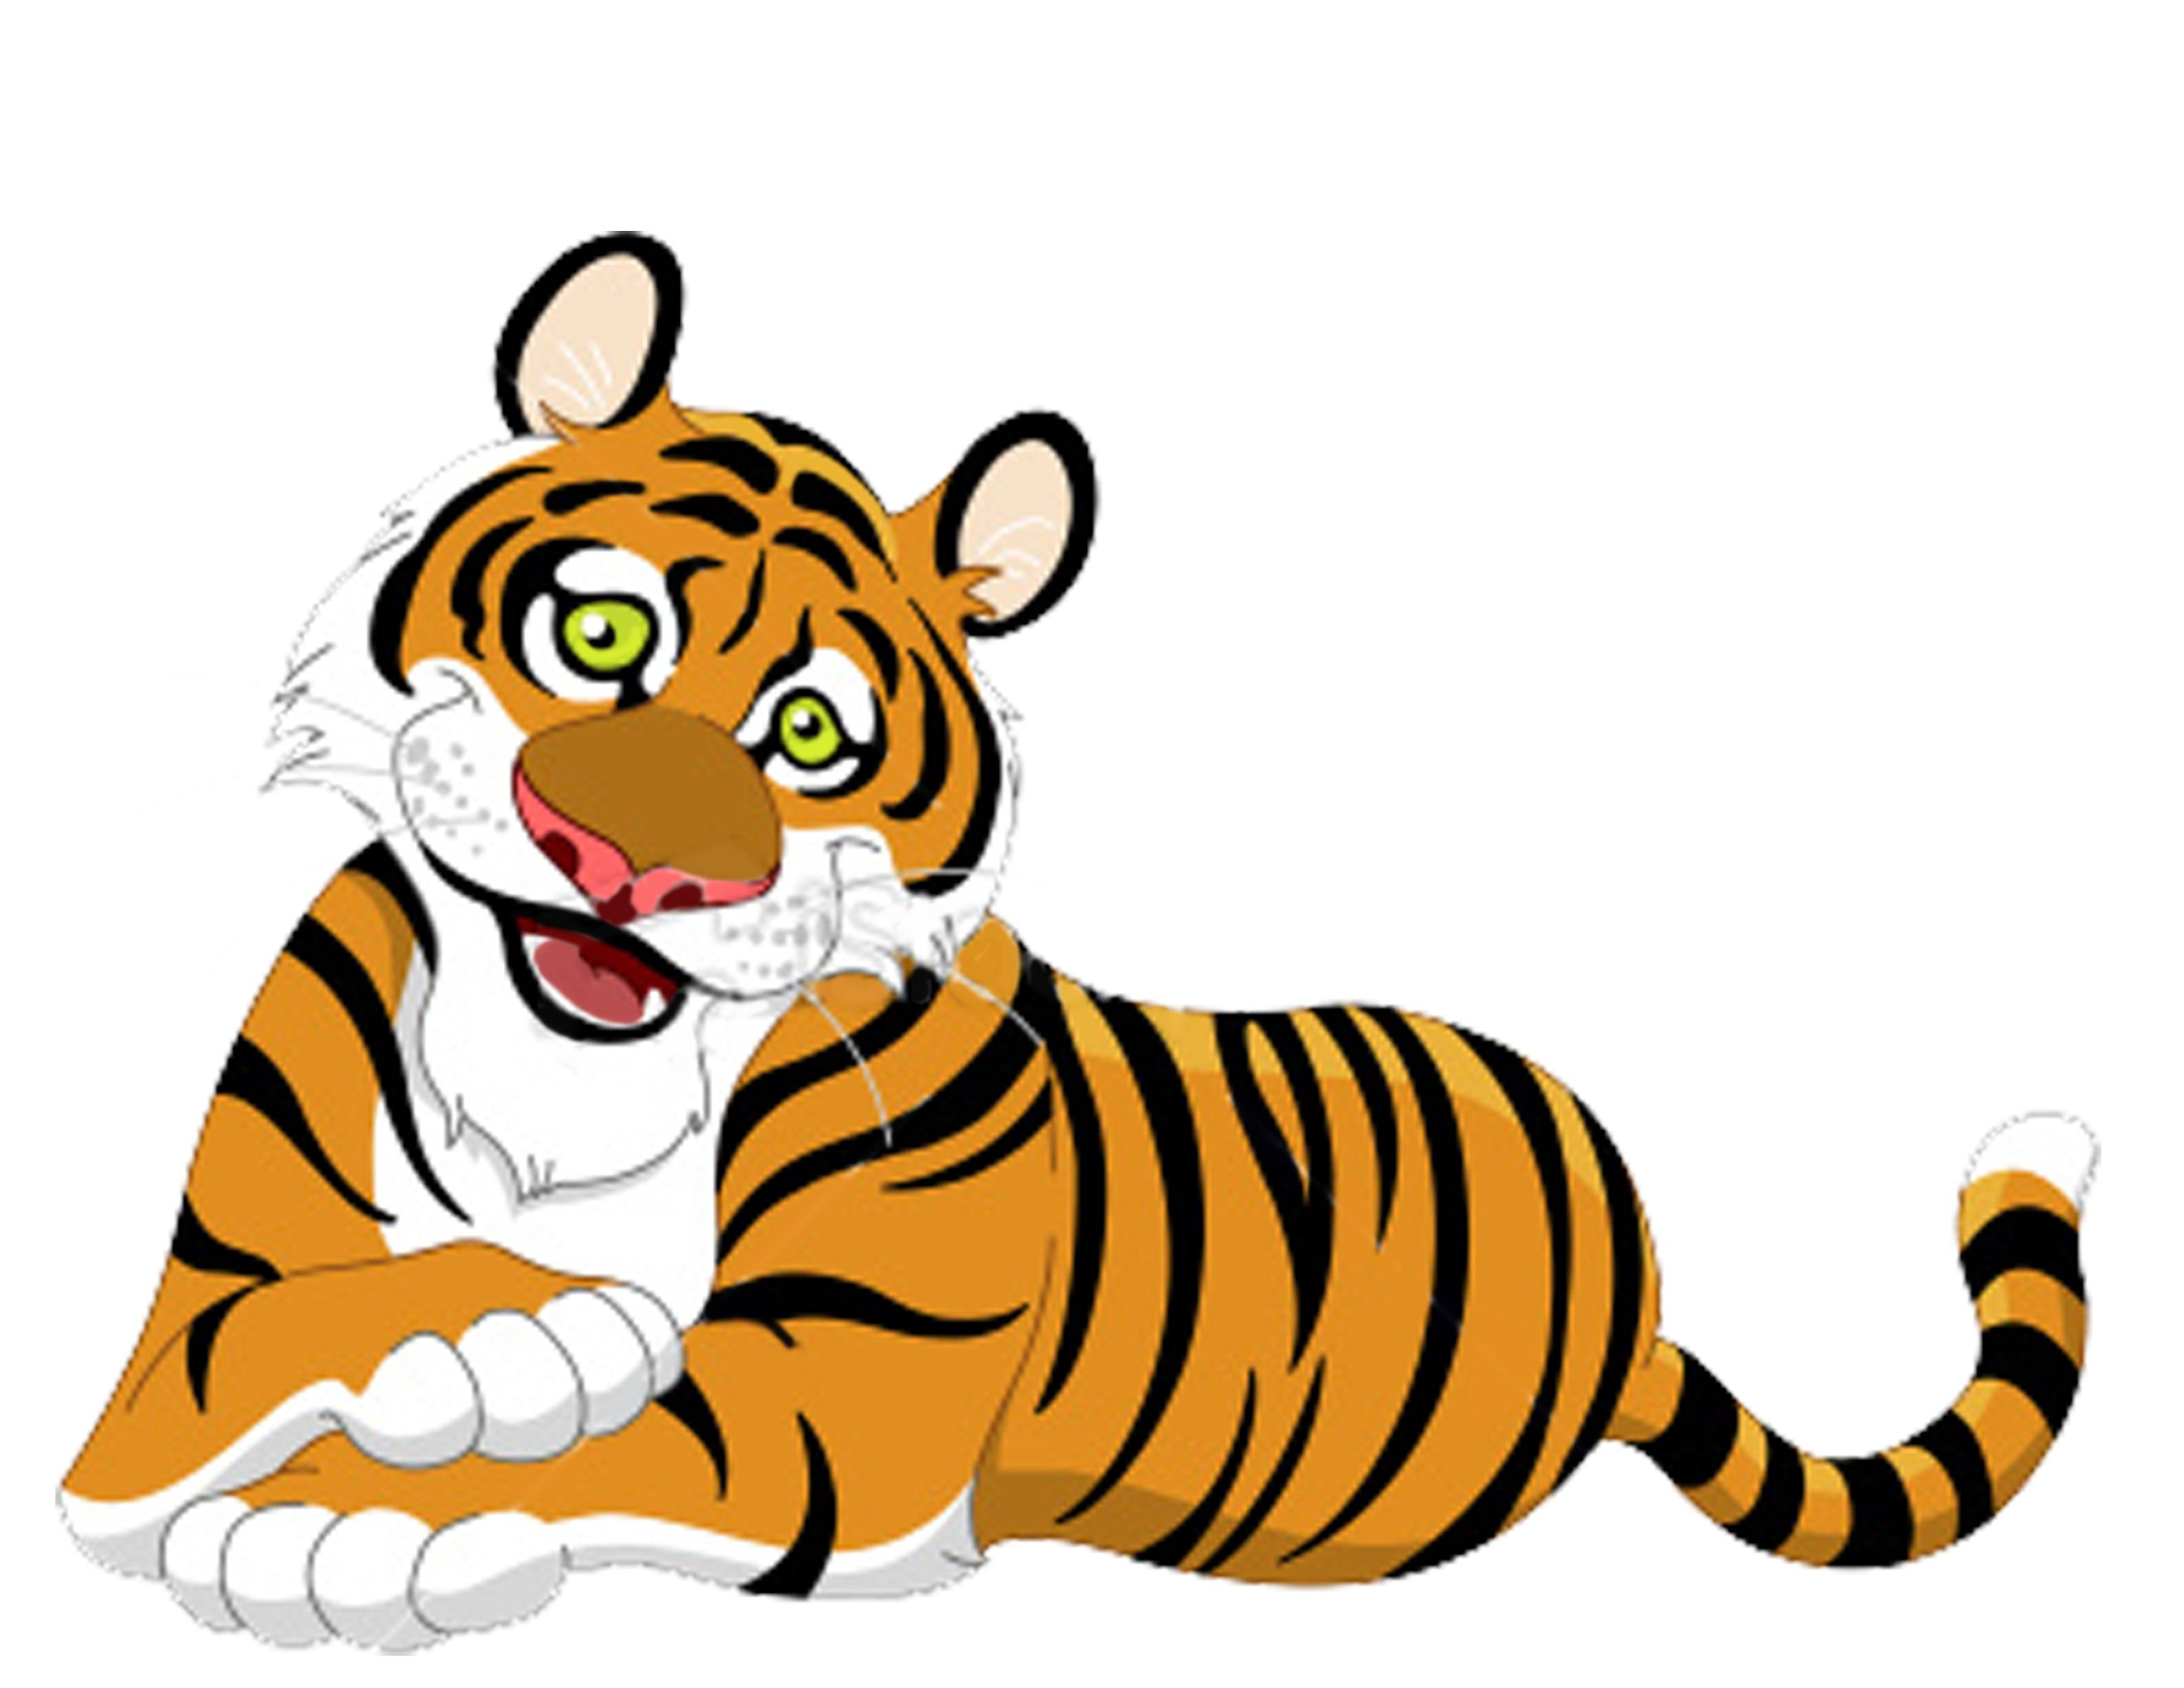 Tiger clipart pic royalty free download Tiger clipart | Book images | Tiger illustration, Cartoon drawings ... royalty free download